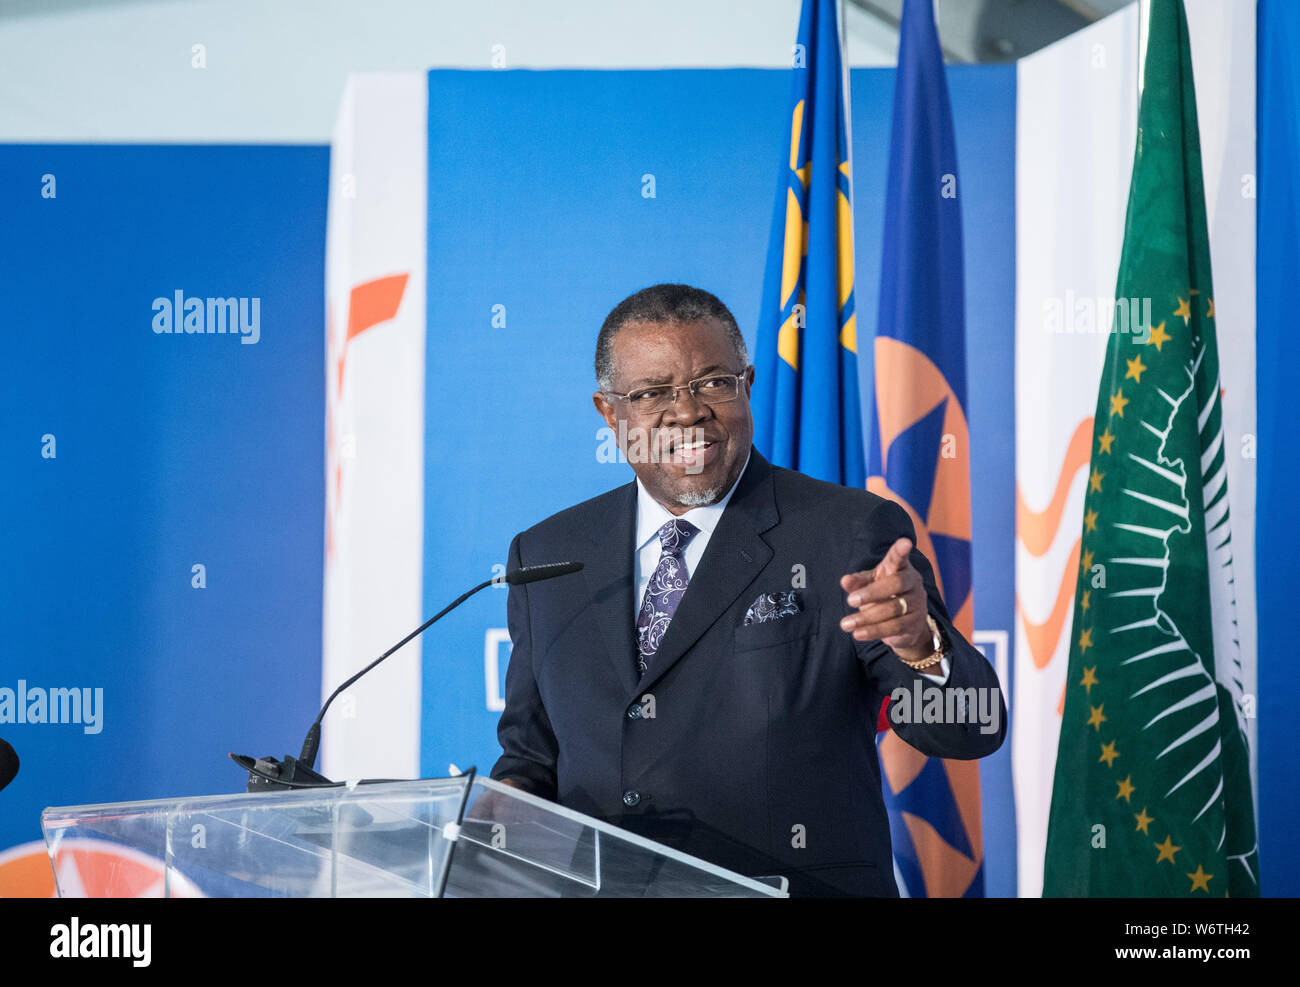 (190802) -- WALVIS BAY (NAMIBIA), Aug. 2, 2019 (Xinhua) -- Namibia's President Hage Geingob delivers a speech at the inauguration ceremony of the new container terminal in Walvis Bay, Namibia, Aug. 2, 2019. Namibia's quest to become an international trade hub and gateway advanced further Friday with the official inauguration of the country's 400-million-U.S.-dollar new container terminal in Walvis Bay by the county's President Hage Geingob. The new container terminal located in the port town of Walvis Bay was constructed on 40 hectares of land reclaimed from the sea by China Harbor Engineering Stock Photo